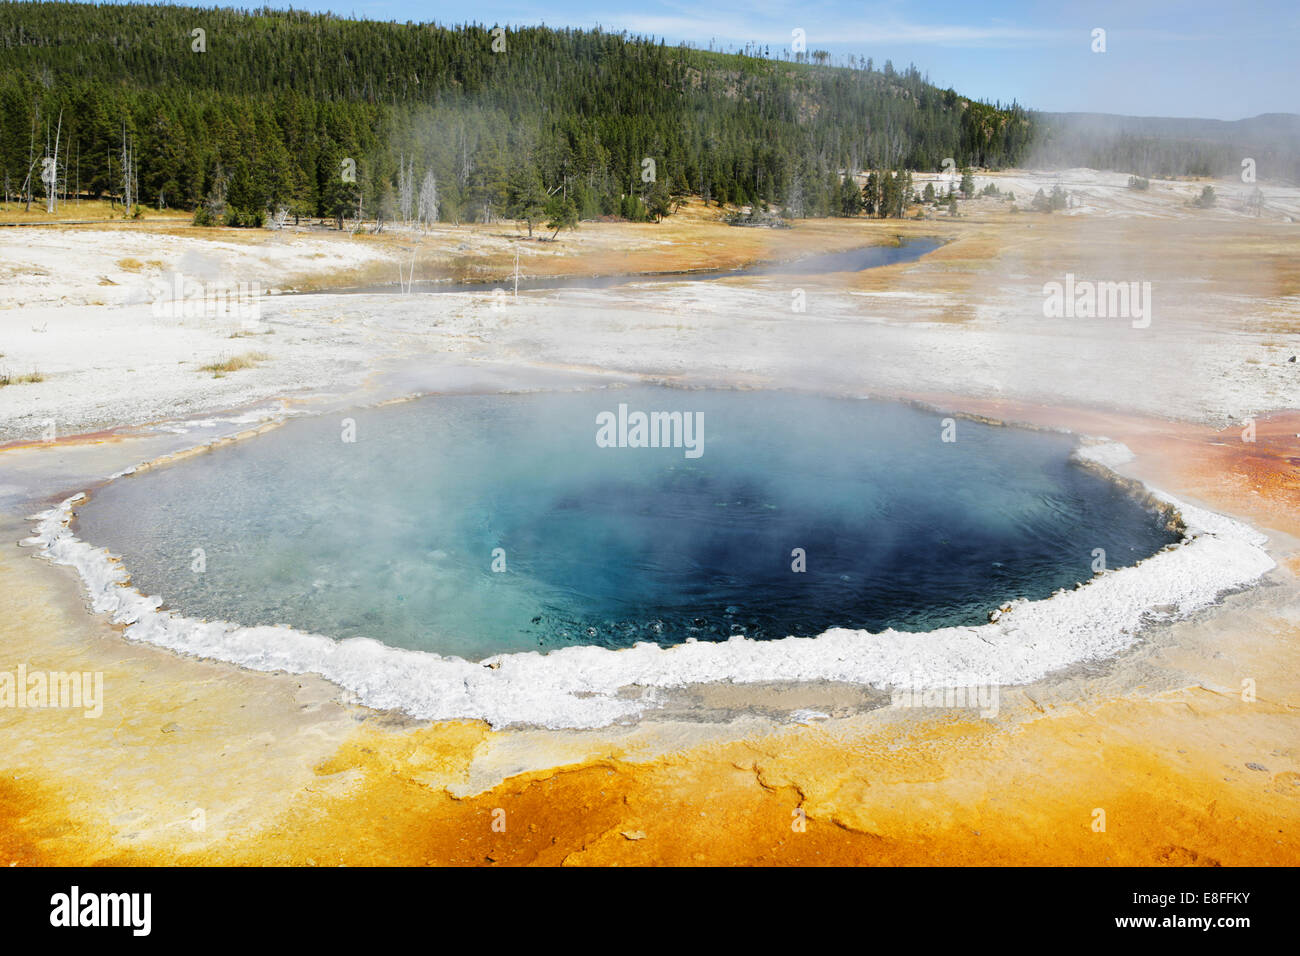 USA, Wyoming, Yellowstone National Park, Hot springs - Stock Image